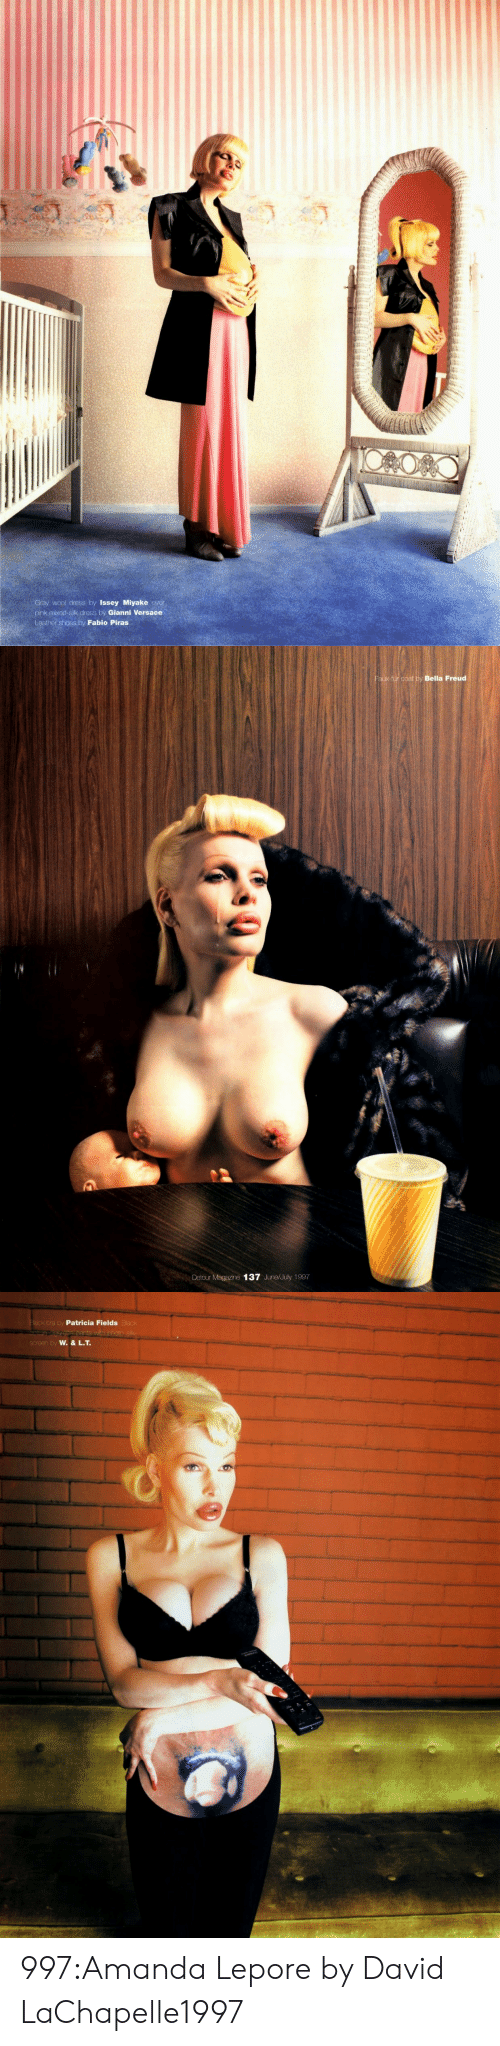 Shoes, Tumblr, and Versace: Gray wool dress by Issey Miyake over  pink mixed-sik dress by Gianni Versace  eather shoes by Fabio Piras   Faux-fur coat by Bella Freud  Detour Magazine 137 June/July 1997   a by  Patricia Fields  by 997:Amanda Lepore by David LaChapelle1997